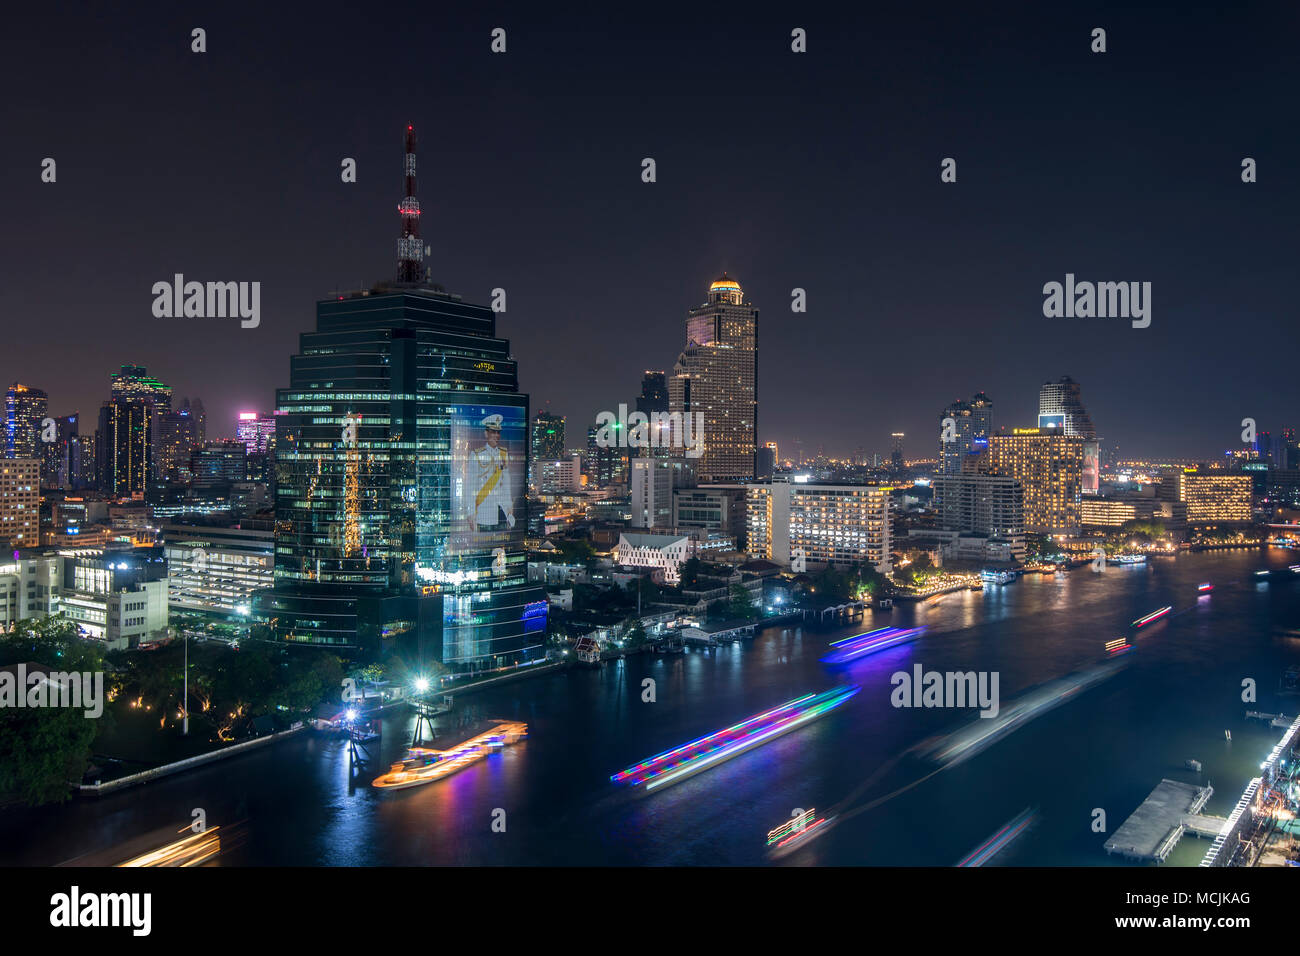 City view of Bangkok at night, view of skyline and river, Lebua State Tower, Bangkok, Thailand - Stock Image